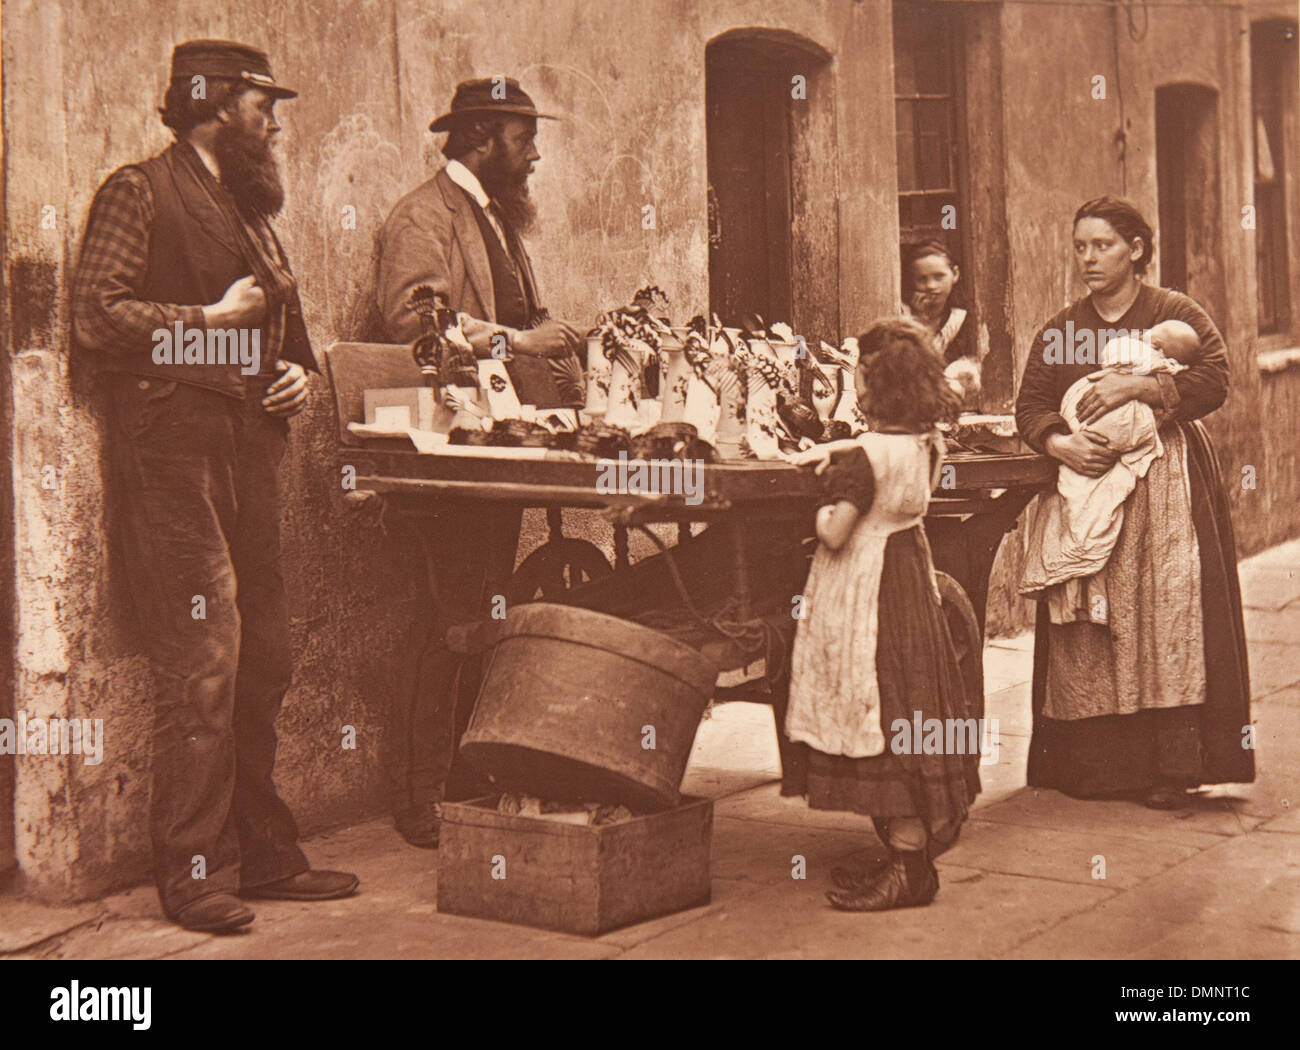 Photograph showing 'Dealer in fancy ware' (jeweley, imitating gems and ornaments) in the Street Life in London book - Stock Image